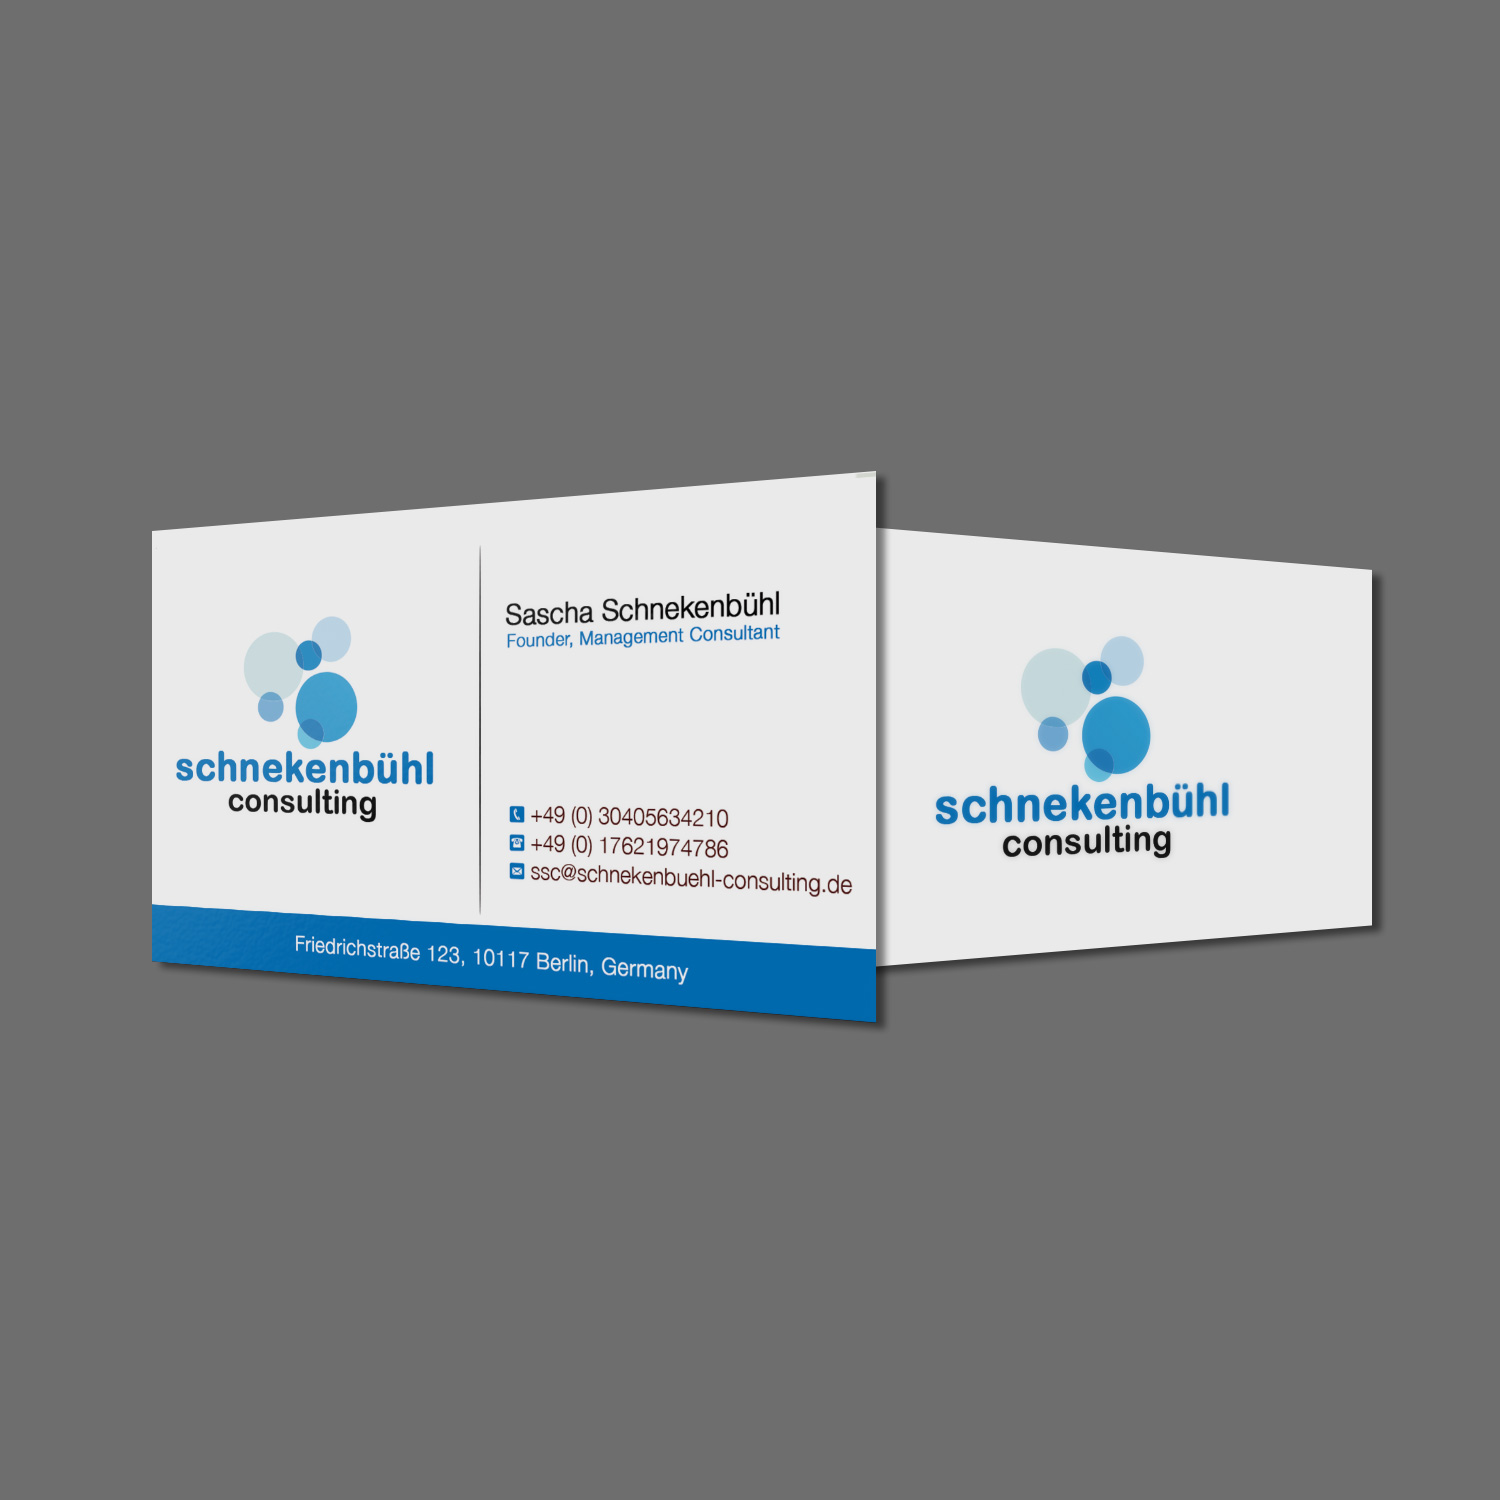 Professional elegant business business card design for business card design by creation lanka for schnekenbhl consulting design 13941729 reheart Gallery